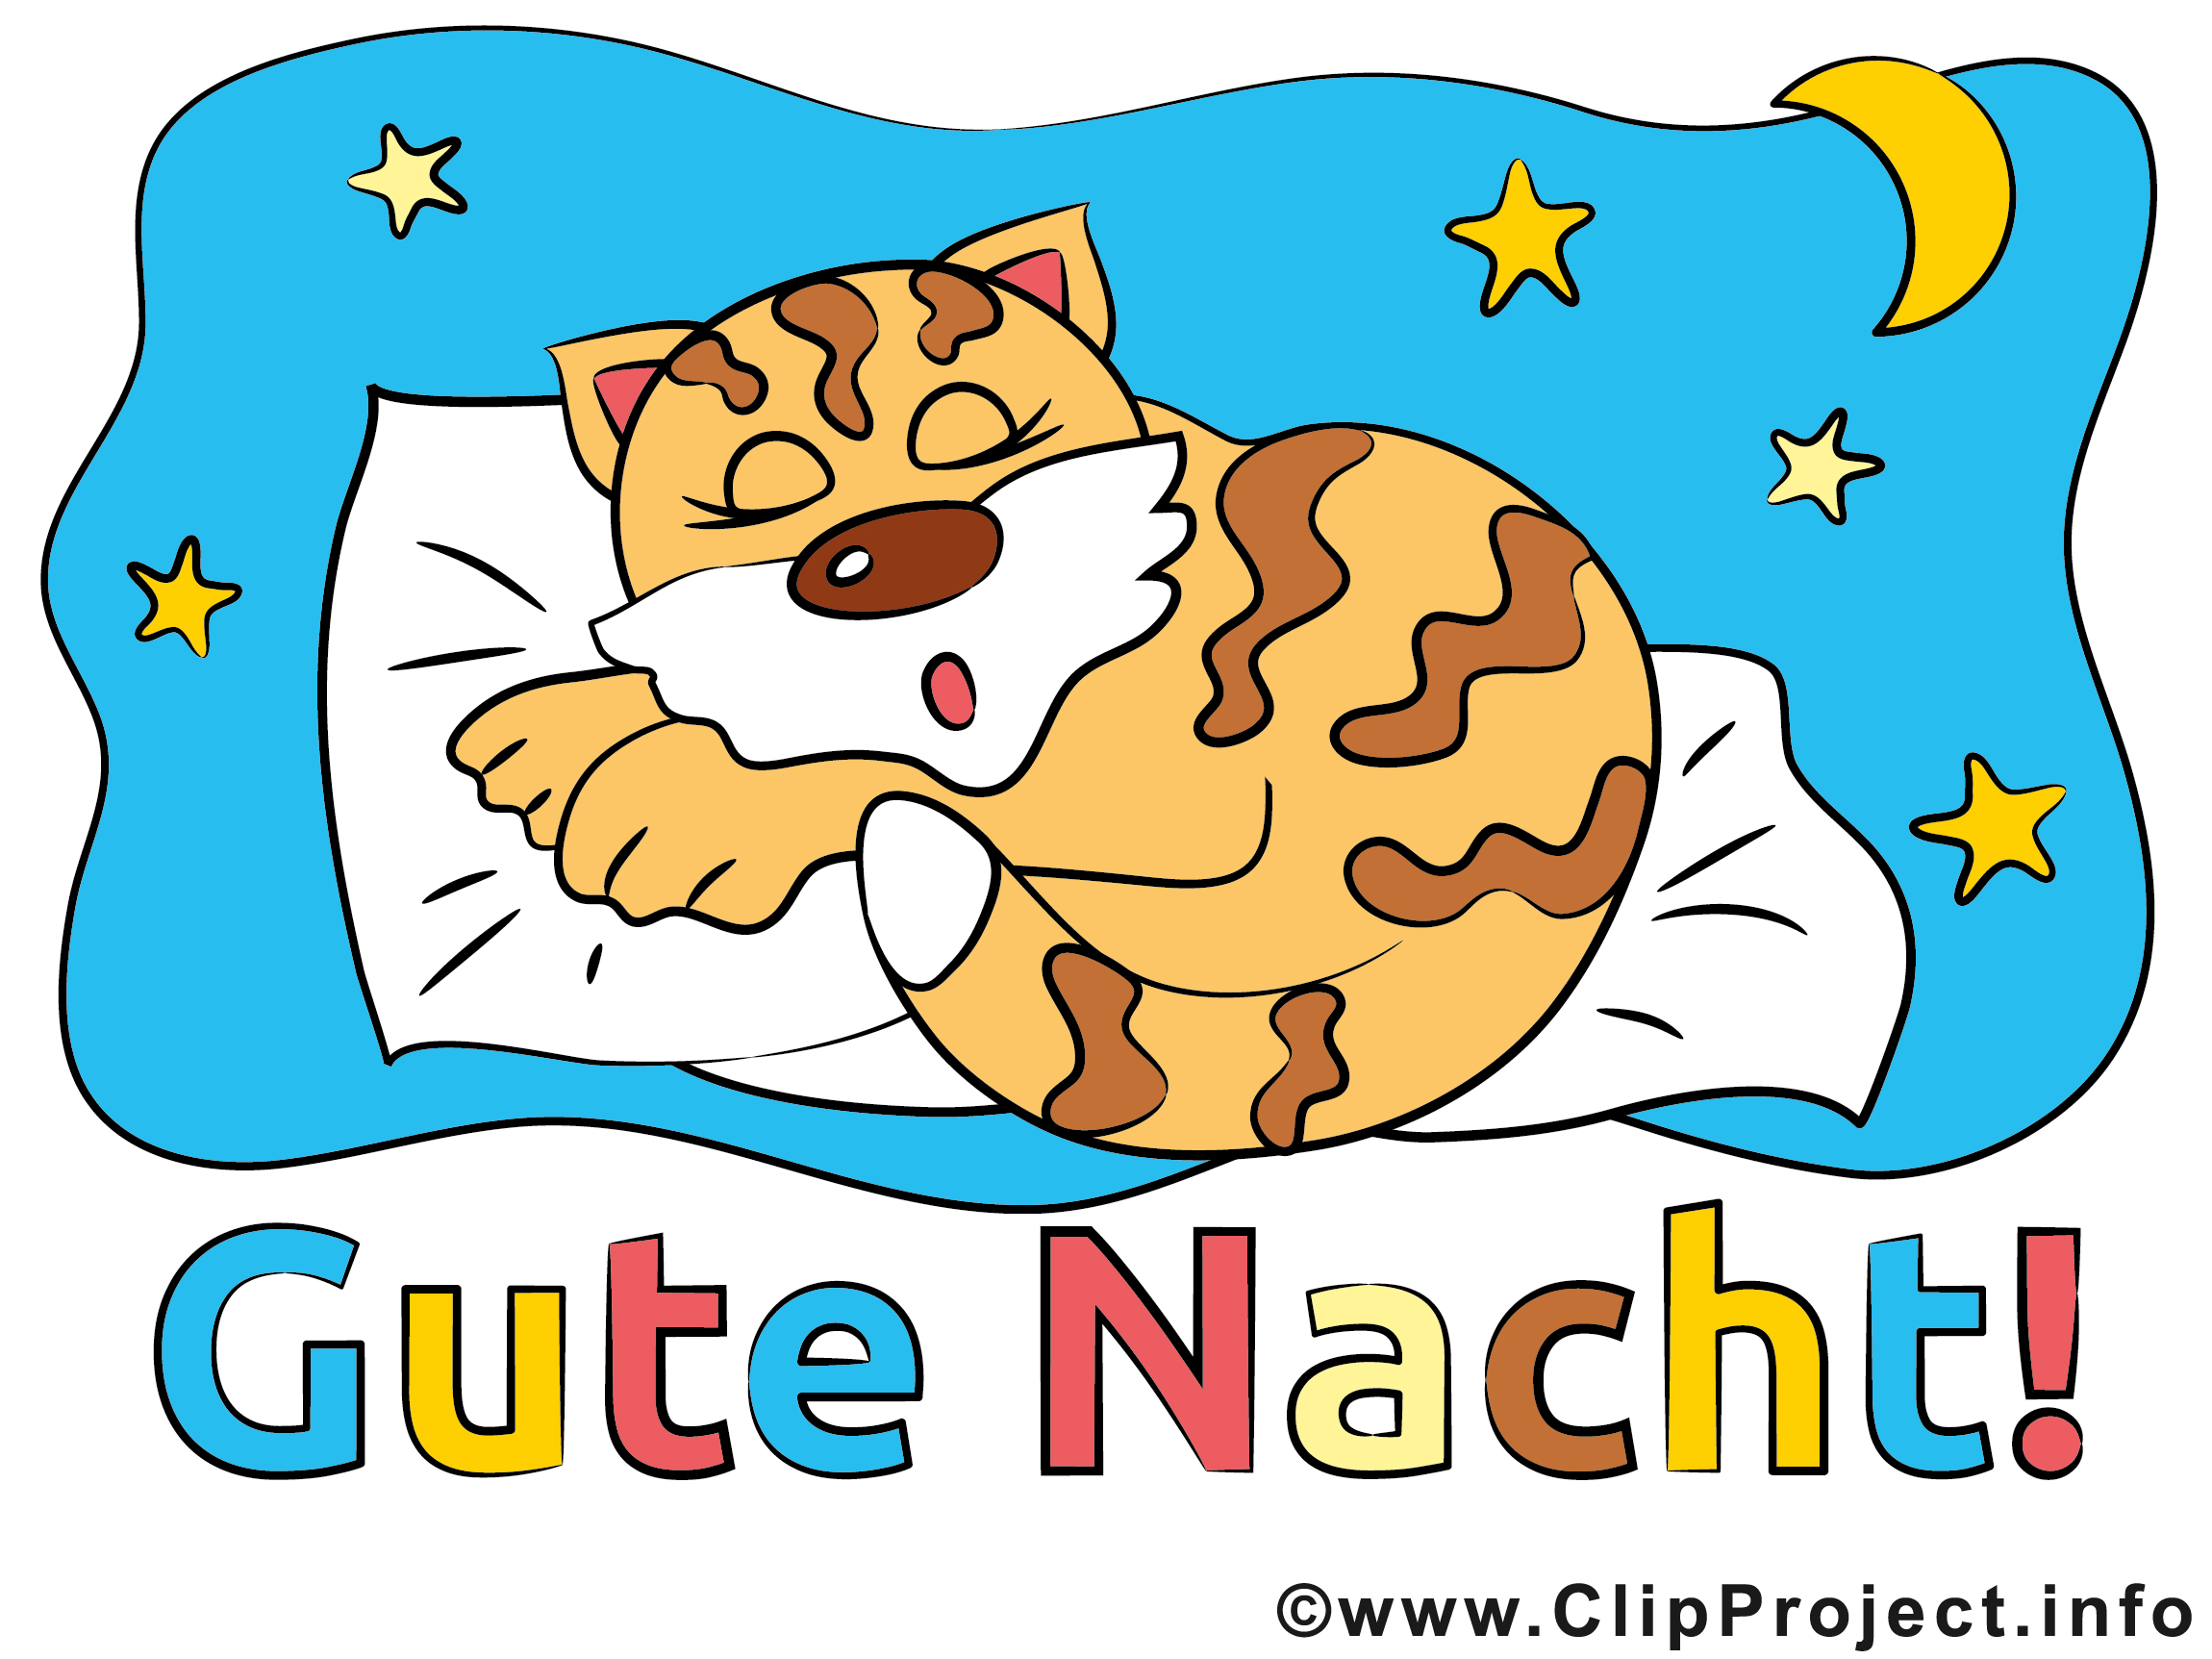 Clipart gute nacht banner library library Clipart gute nacht - ClipartFest banner library library